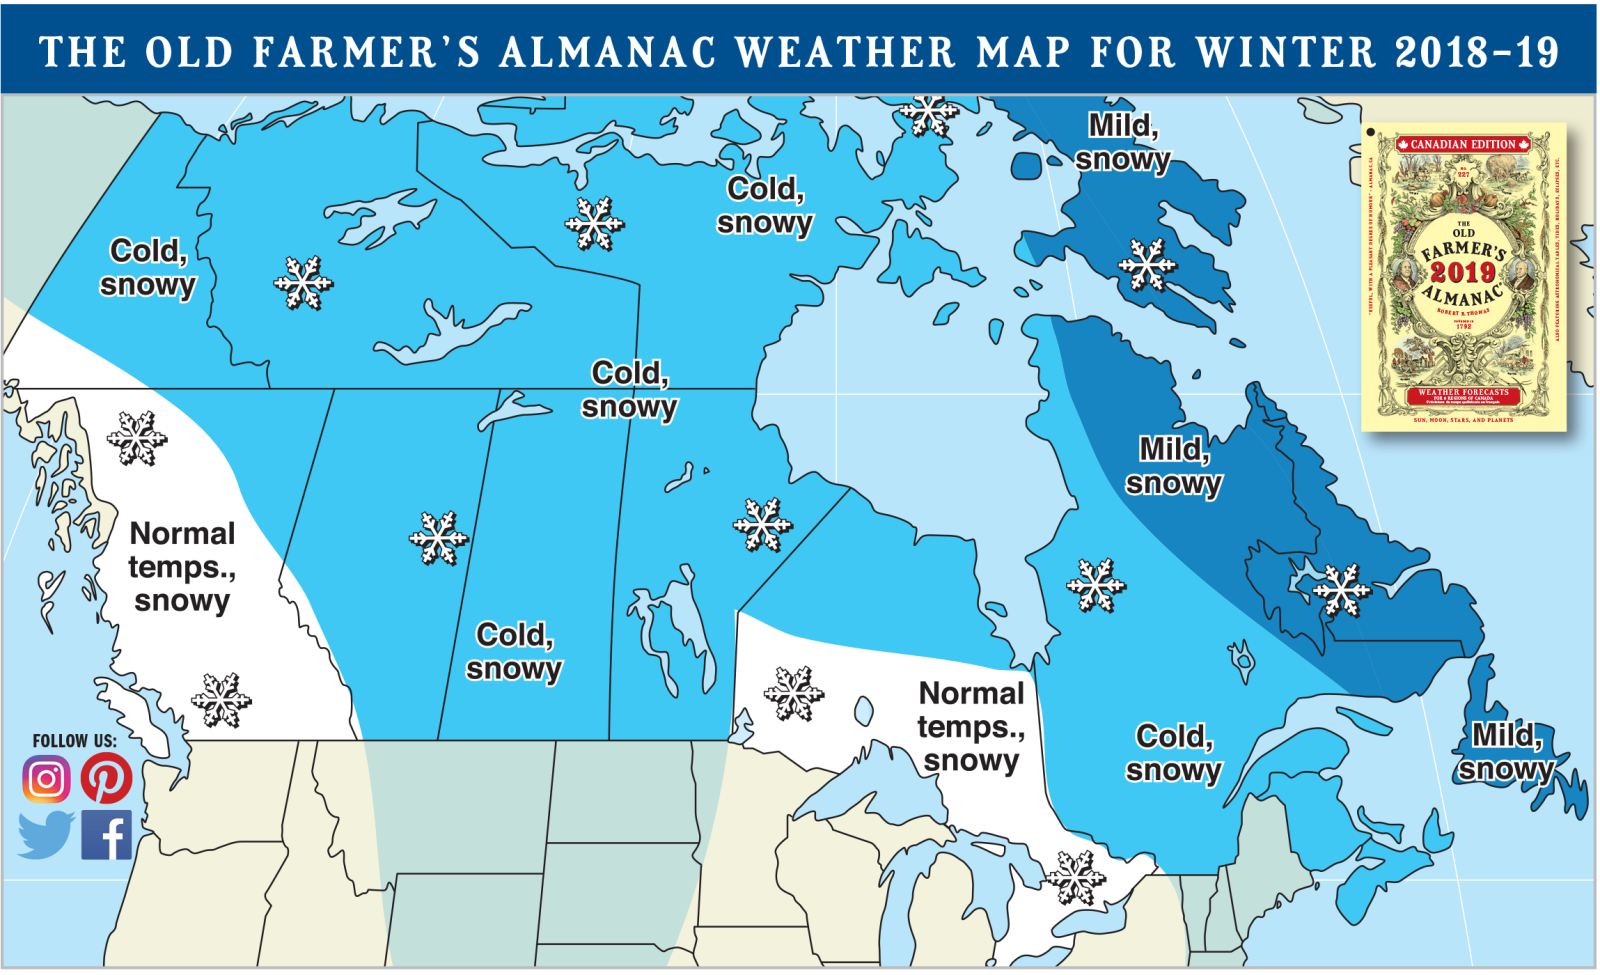 2019 Winter Weather Forecast from The Old Farmer's Almanac - Canada